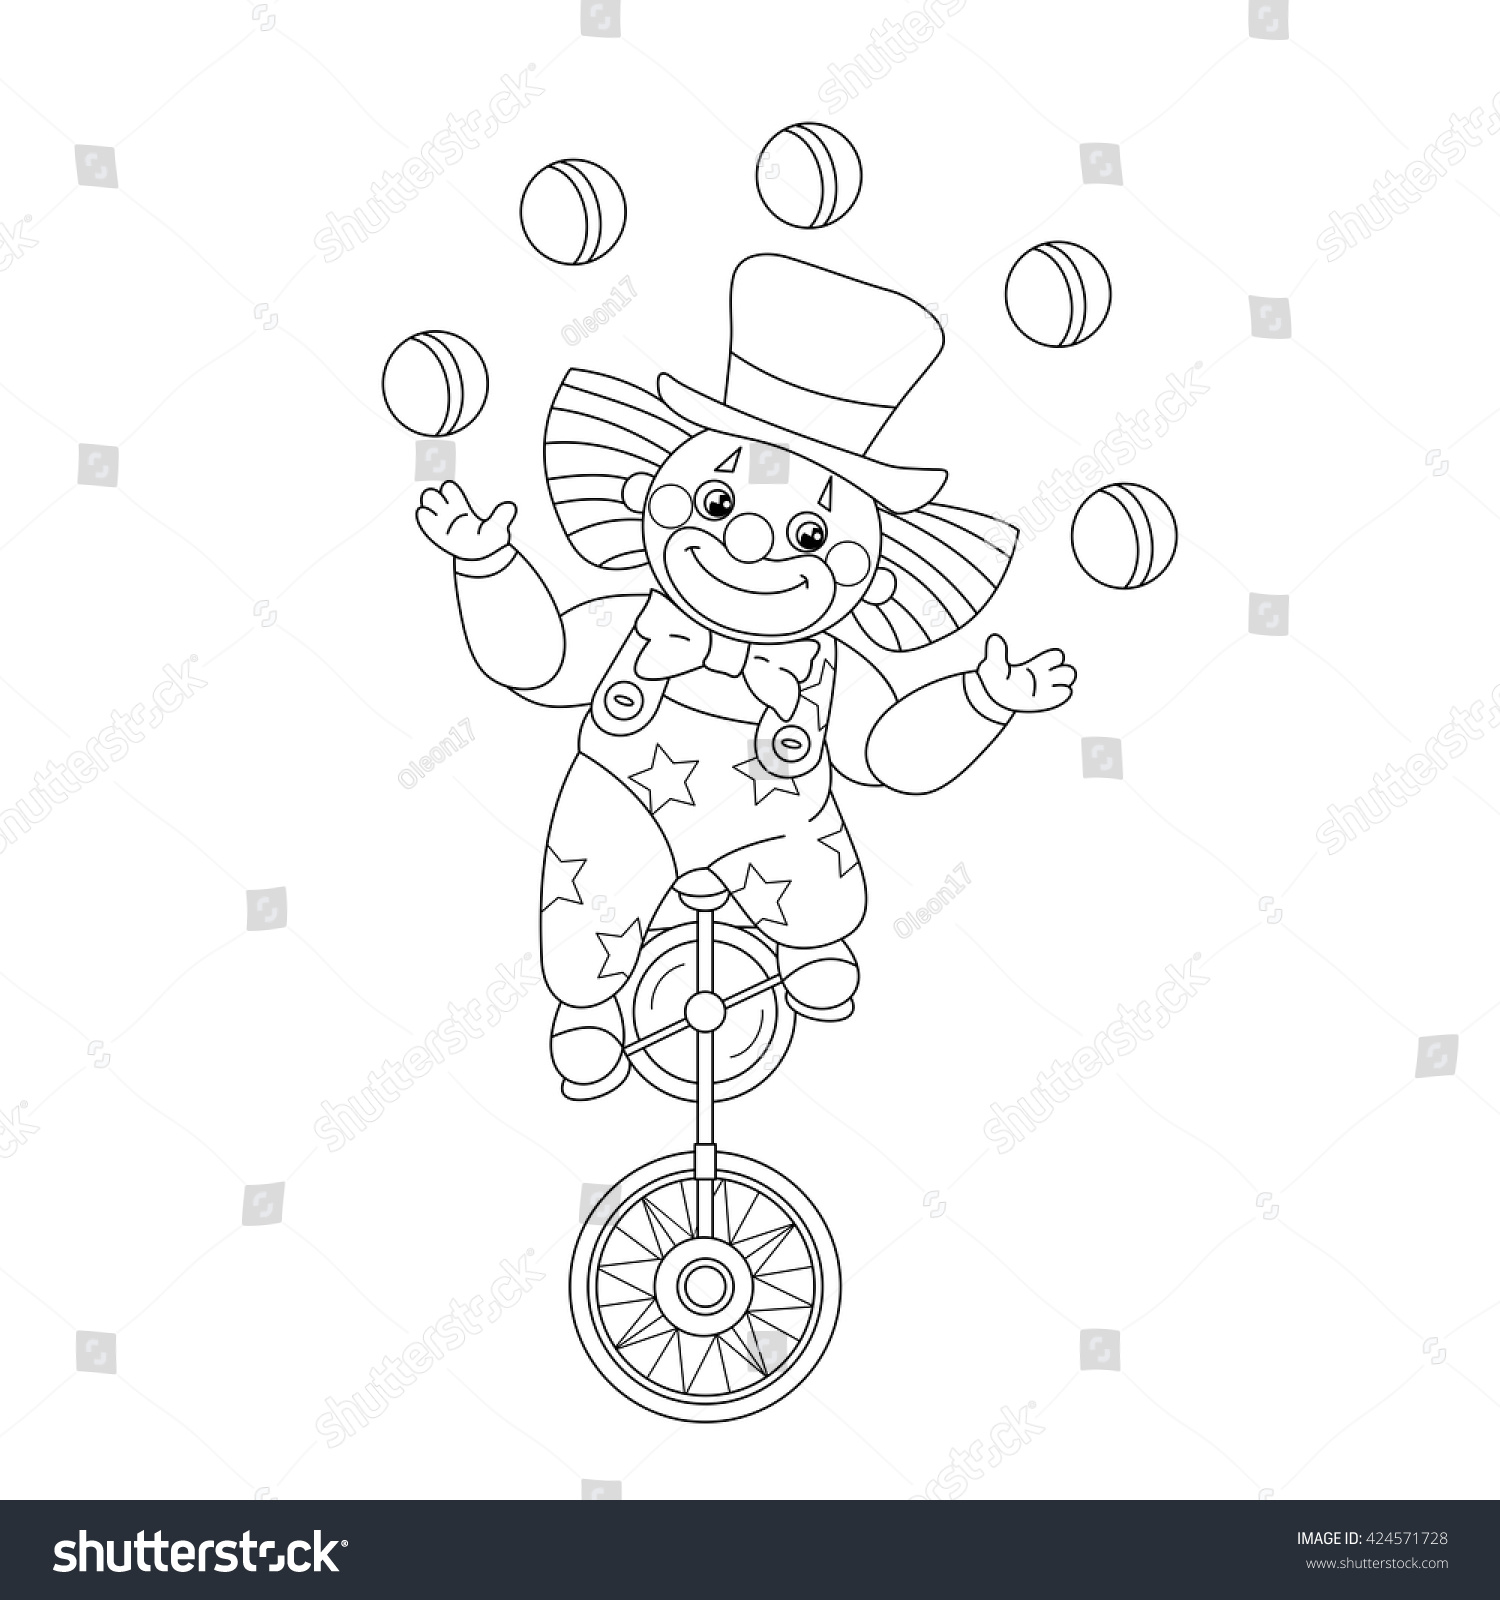 Coloring Page Outline Funny Clown Juggling Stock Vector (Royalty ...